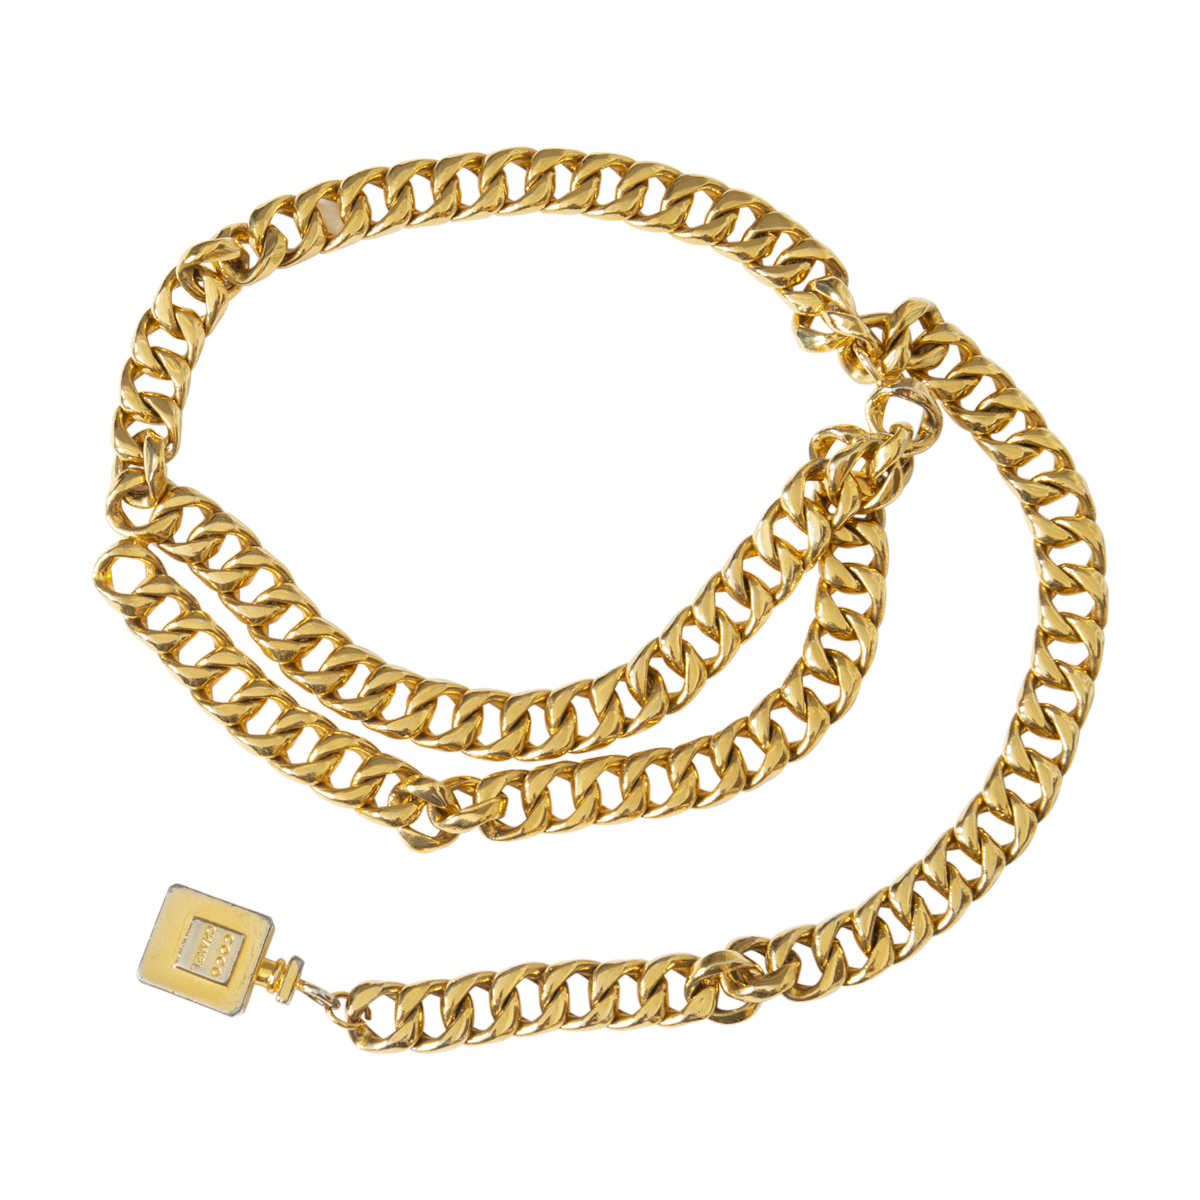 Chanel Curb Link Coco Chanel Belt